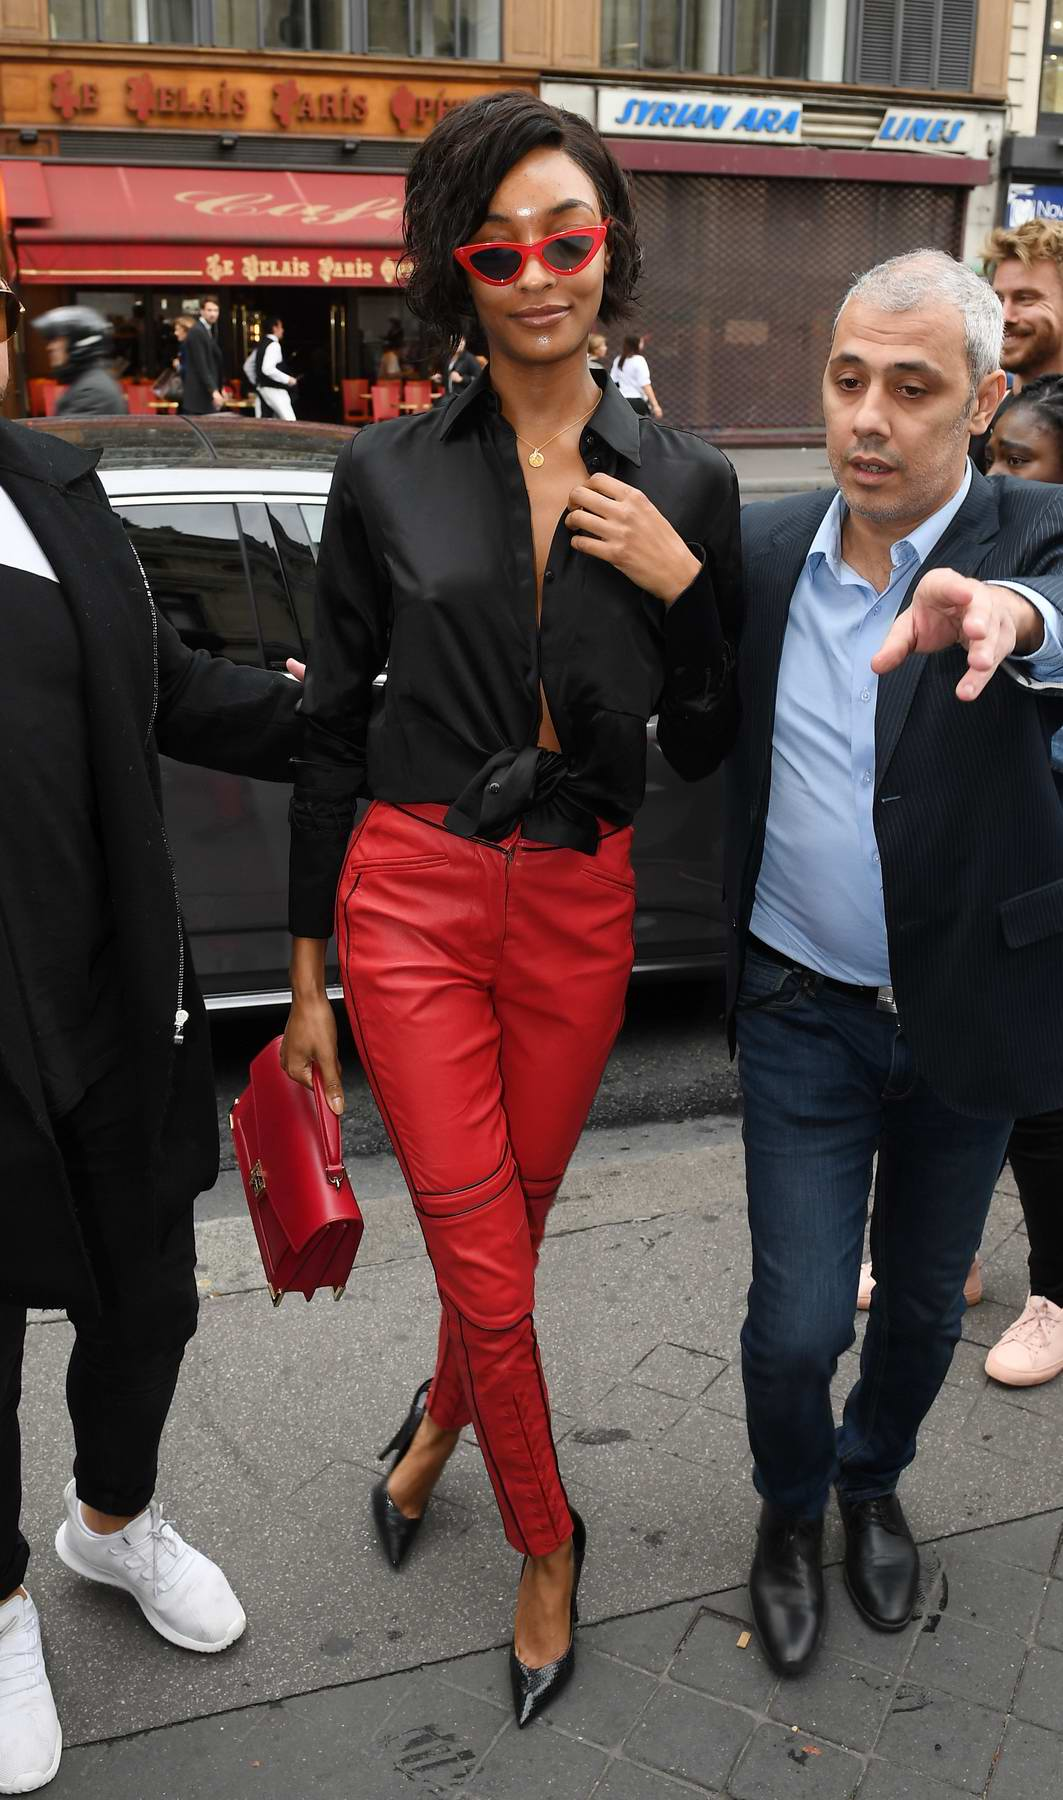 Jourdan Dunn arriving at the Balmain spring summer 2018 show during Paris Fashion Week